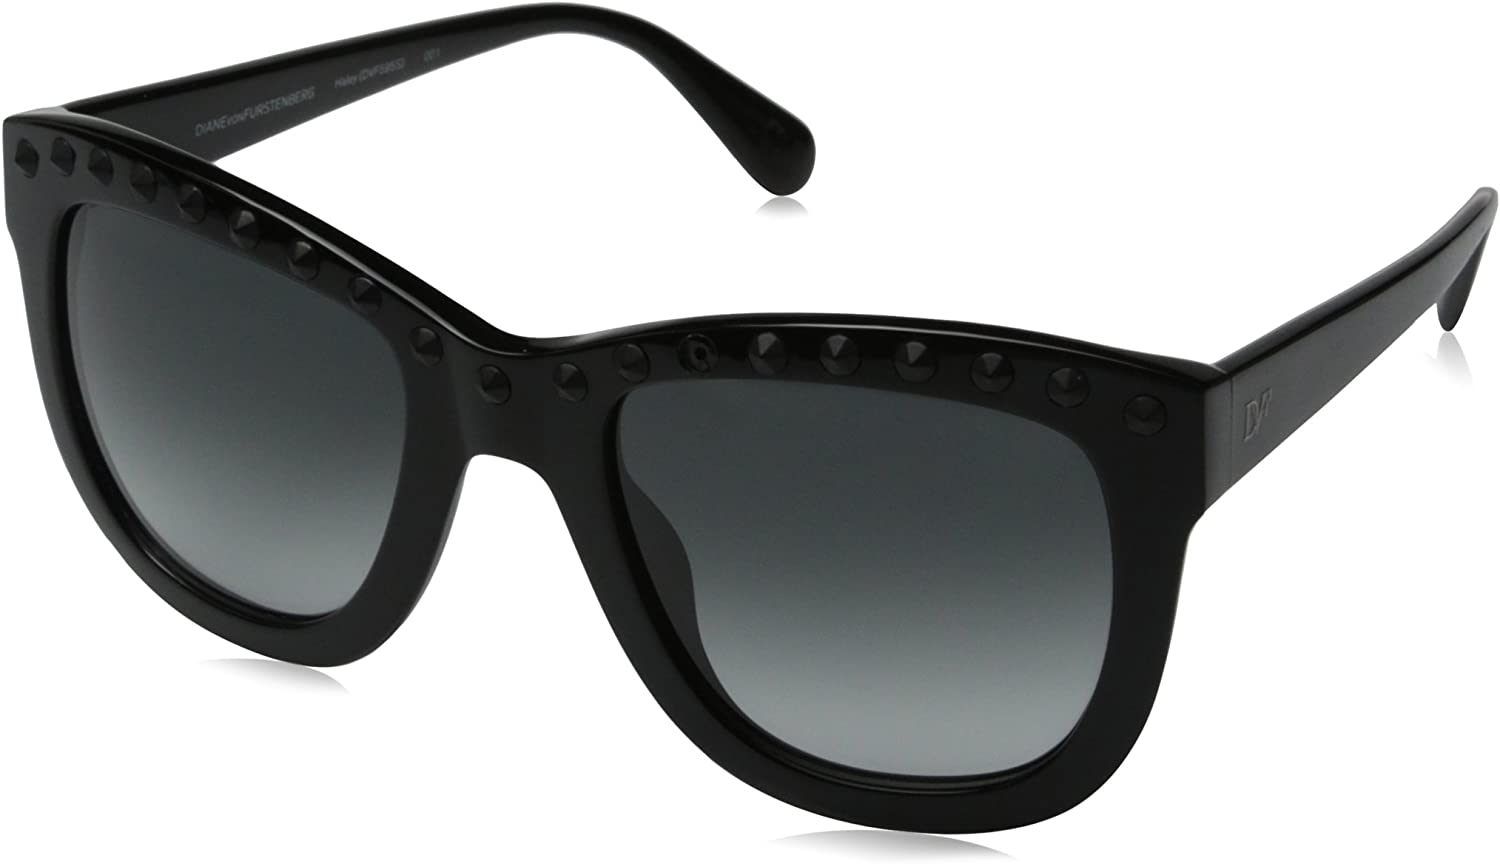 Diane von Furstenberg Women's Haley Square Sunglasses